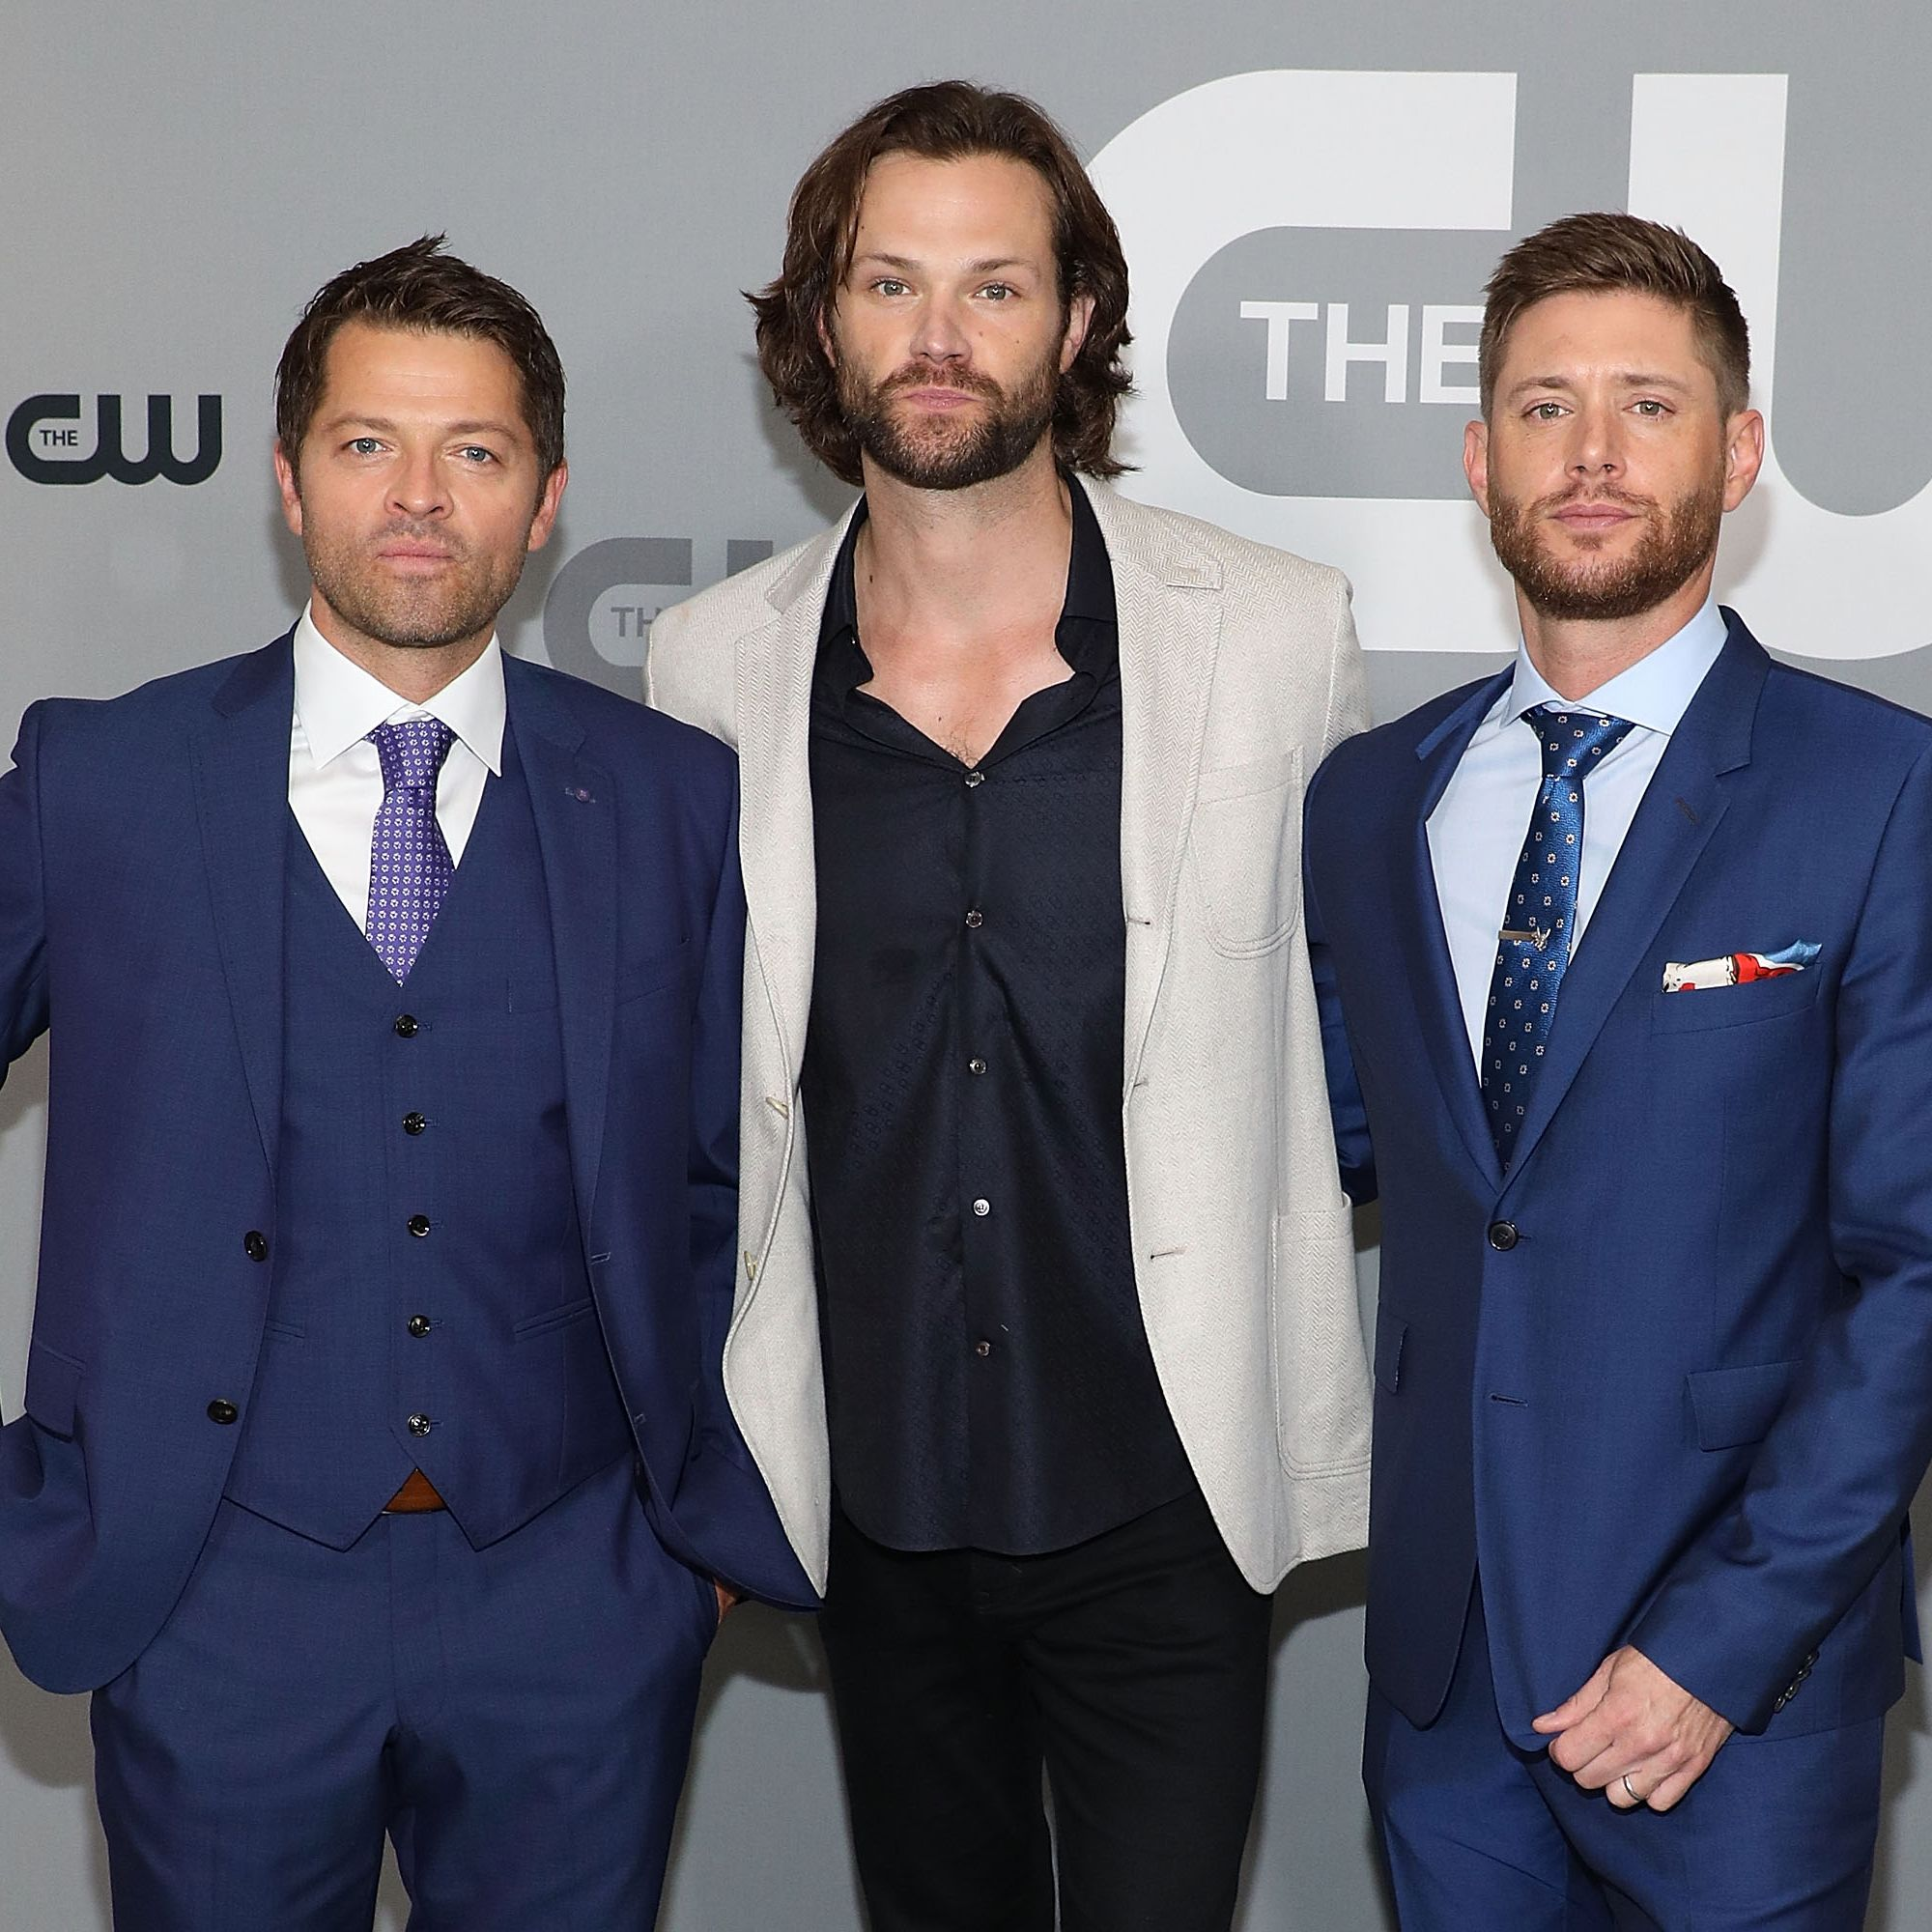 'Supernatural' Is Ending After Season 15. Jared Padalecki, Jensen Ackles, and Misha Collins Have a Message for Fans in Mourning